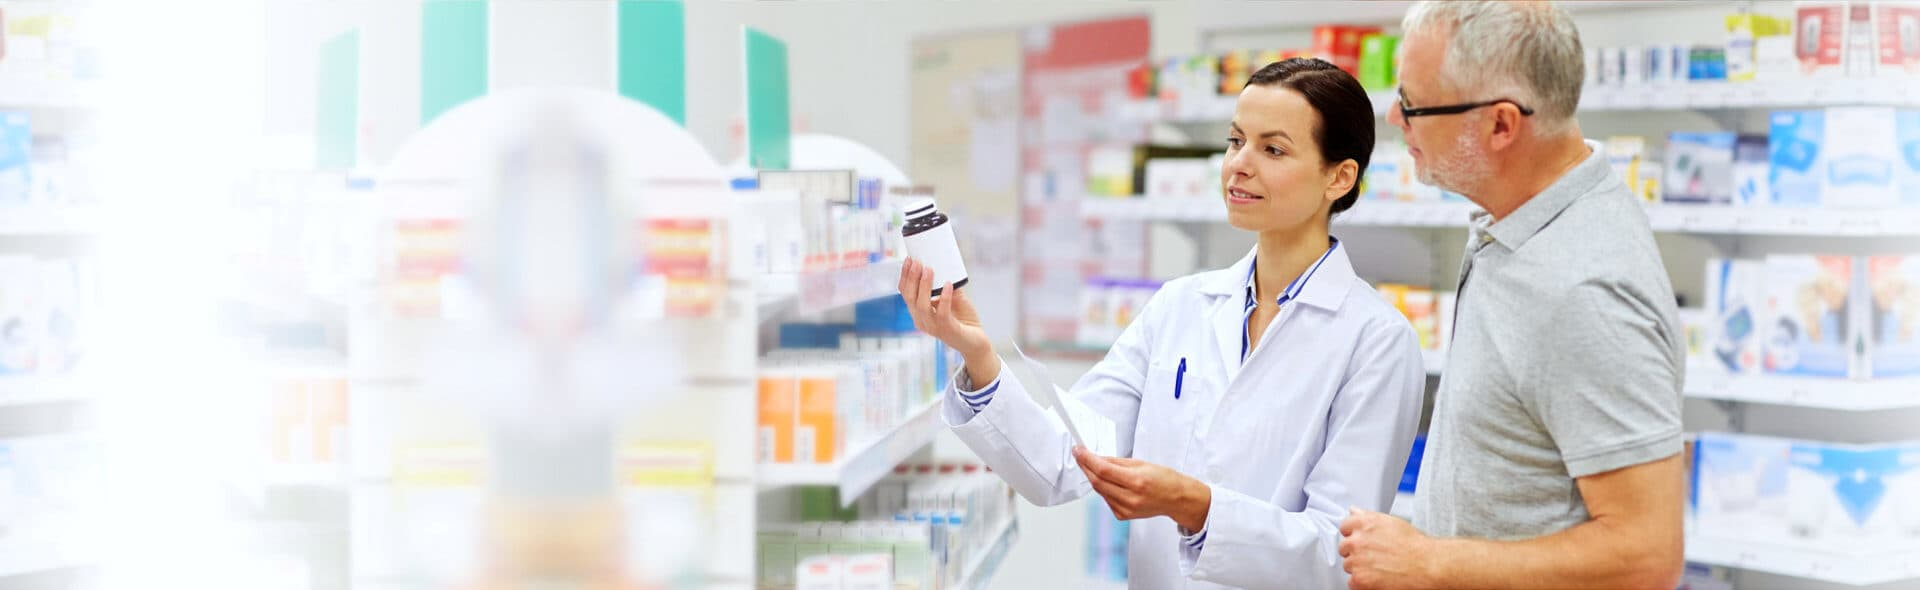 pharmacist discussing the product to senior man